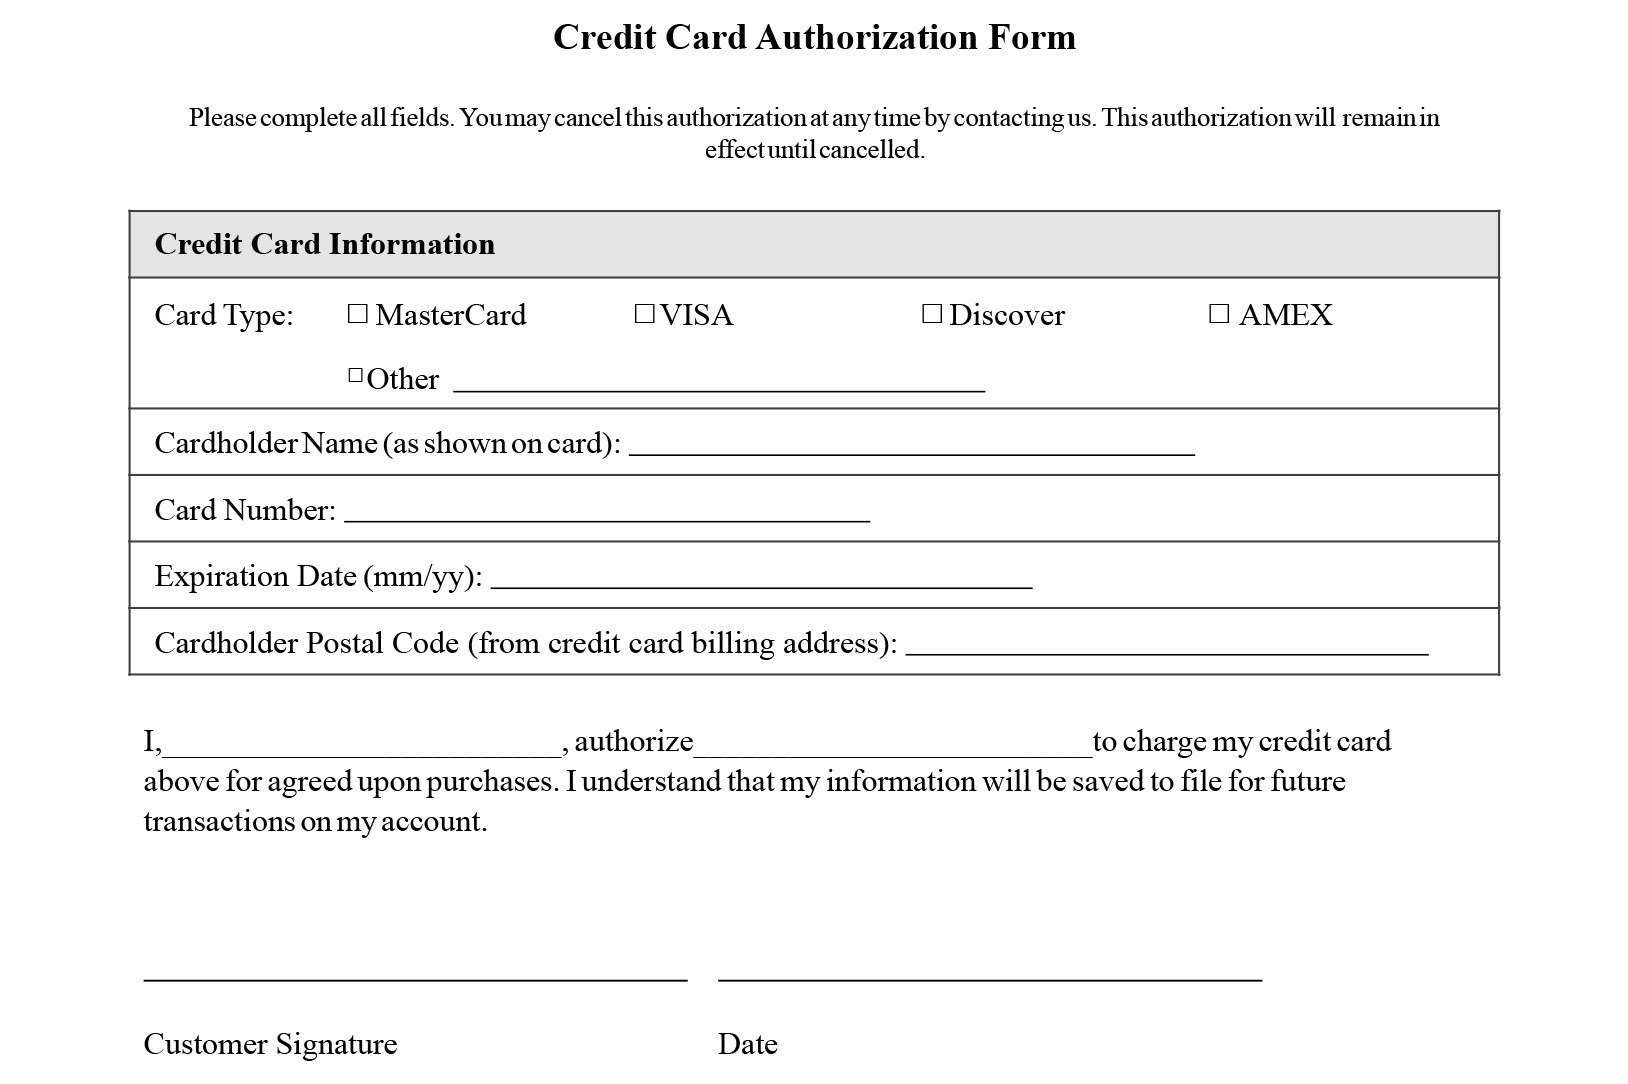 Credit Card Authorization Form Templates Download Regarding Credit Card On File Form Templates